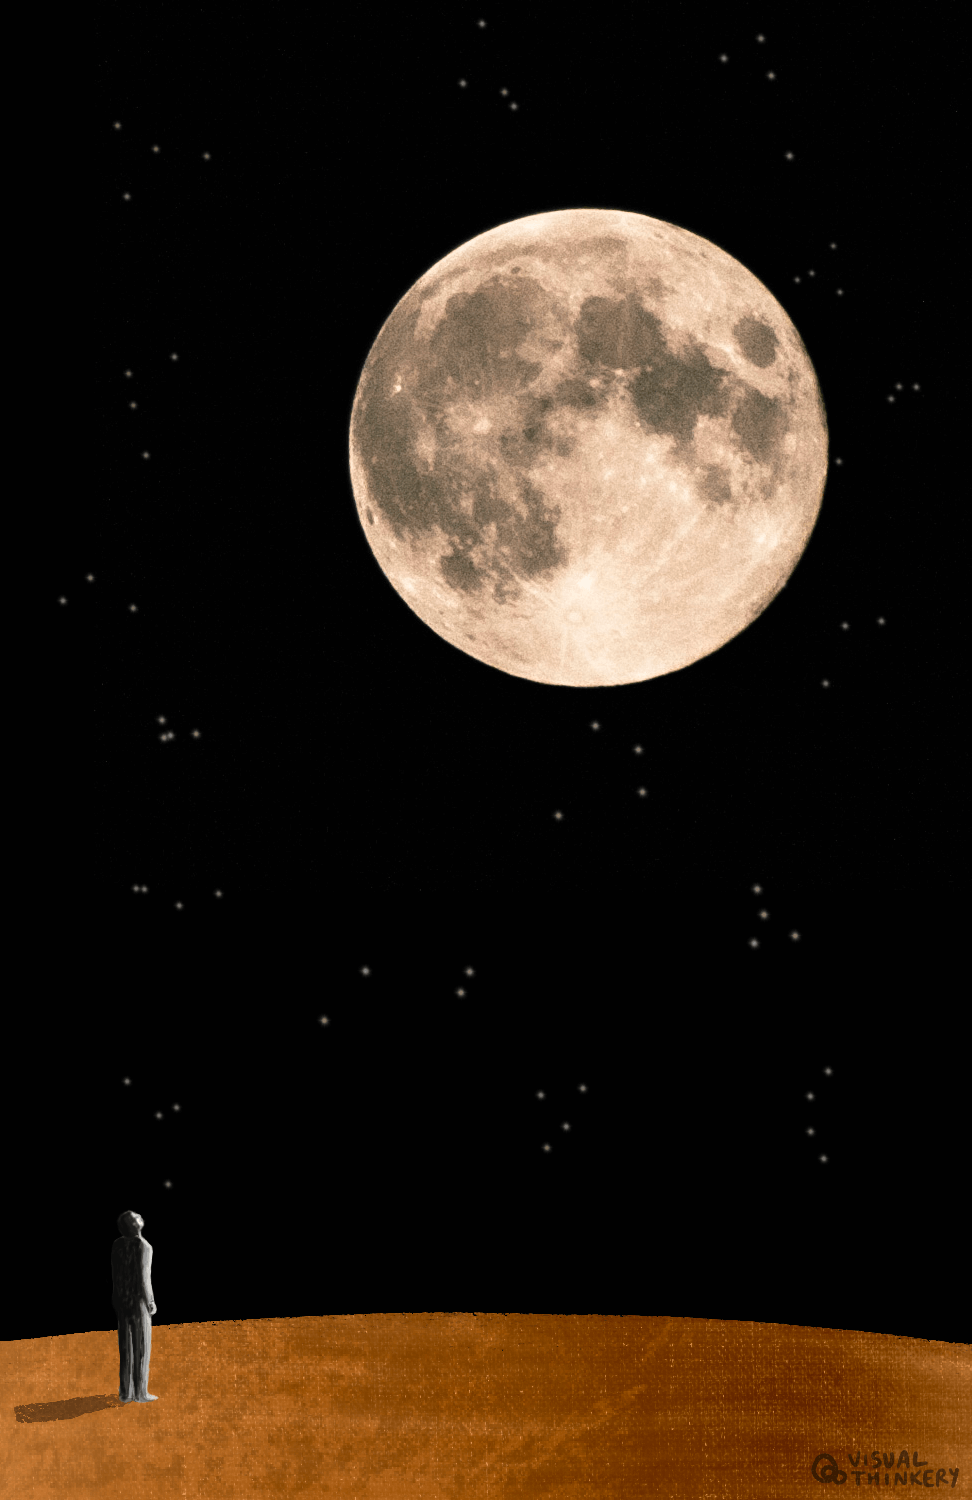 The fool moon photo